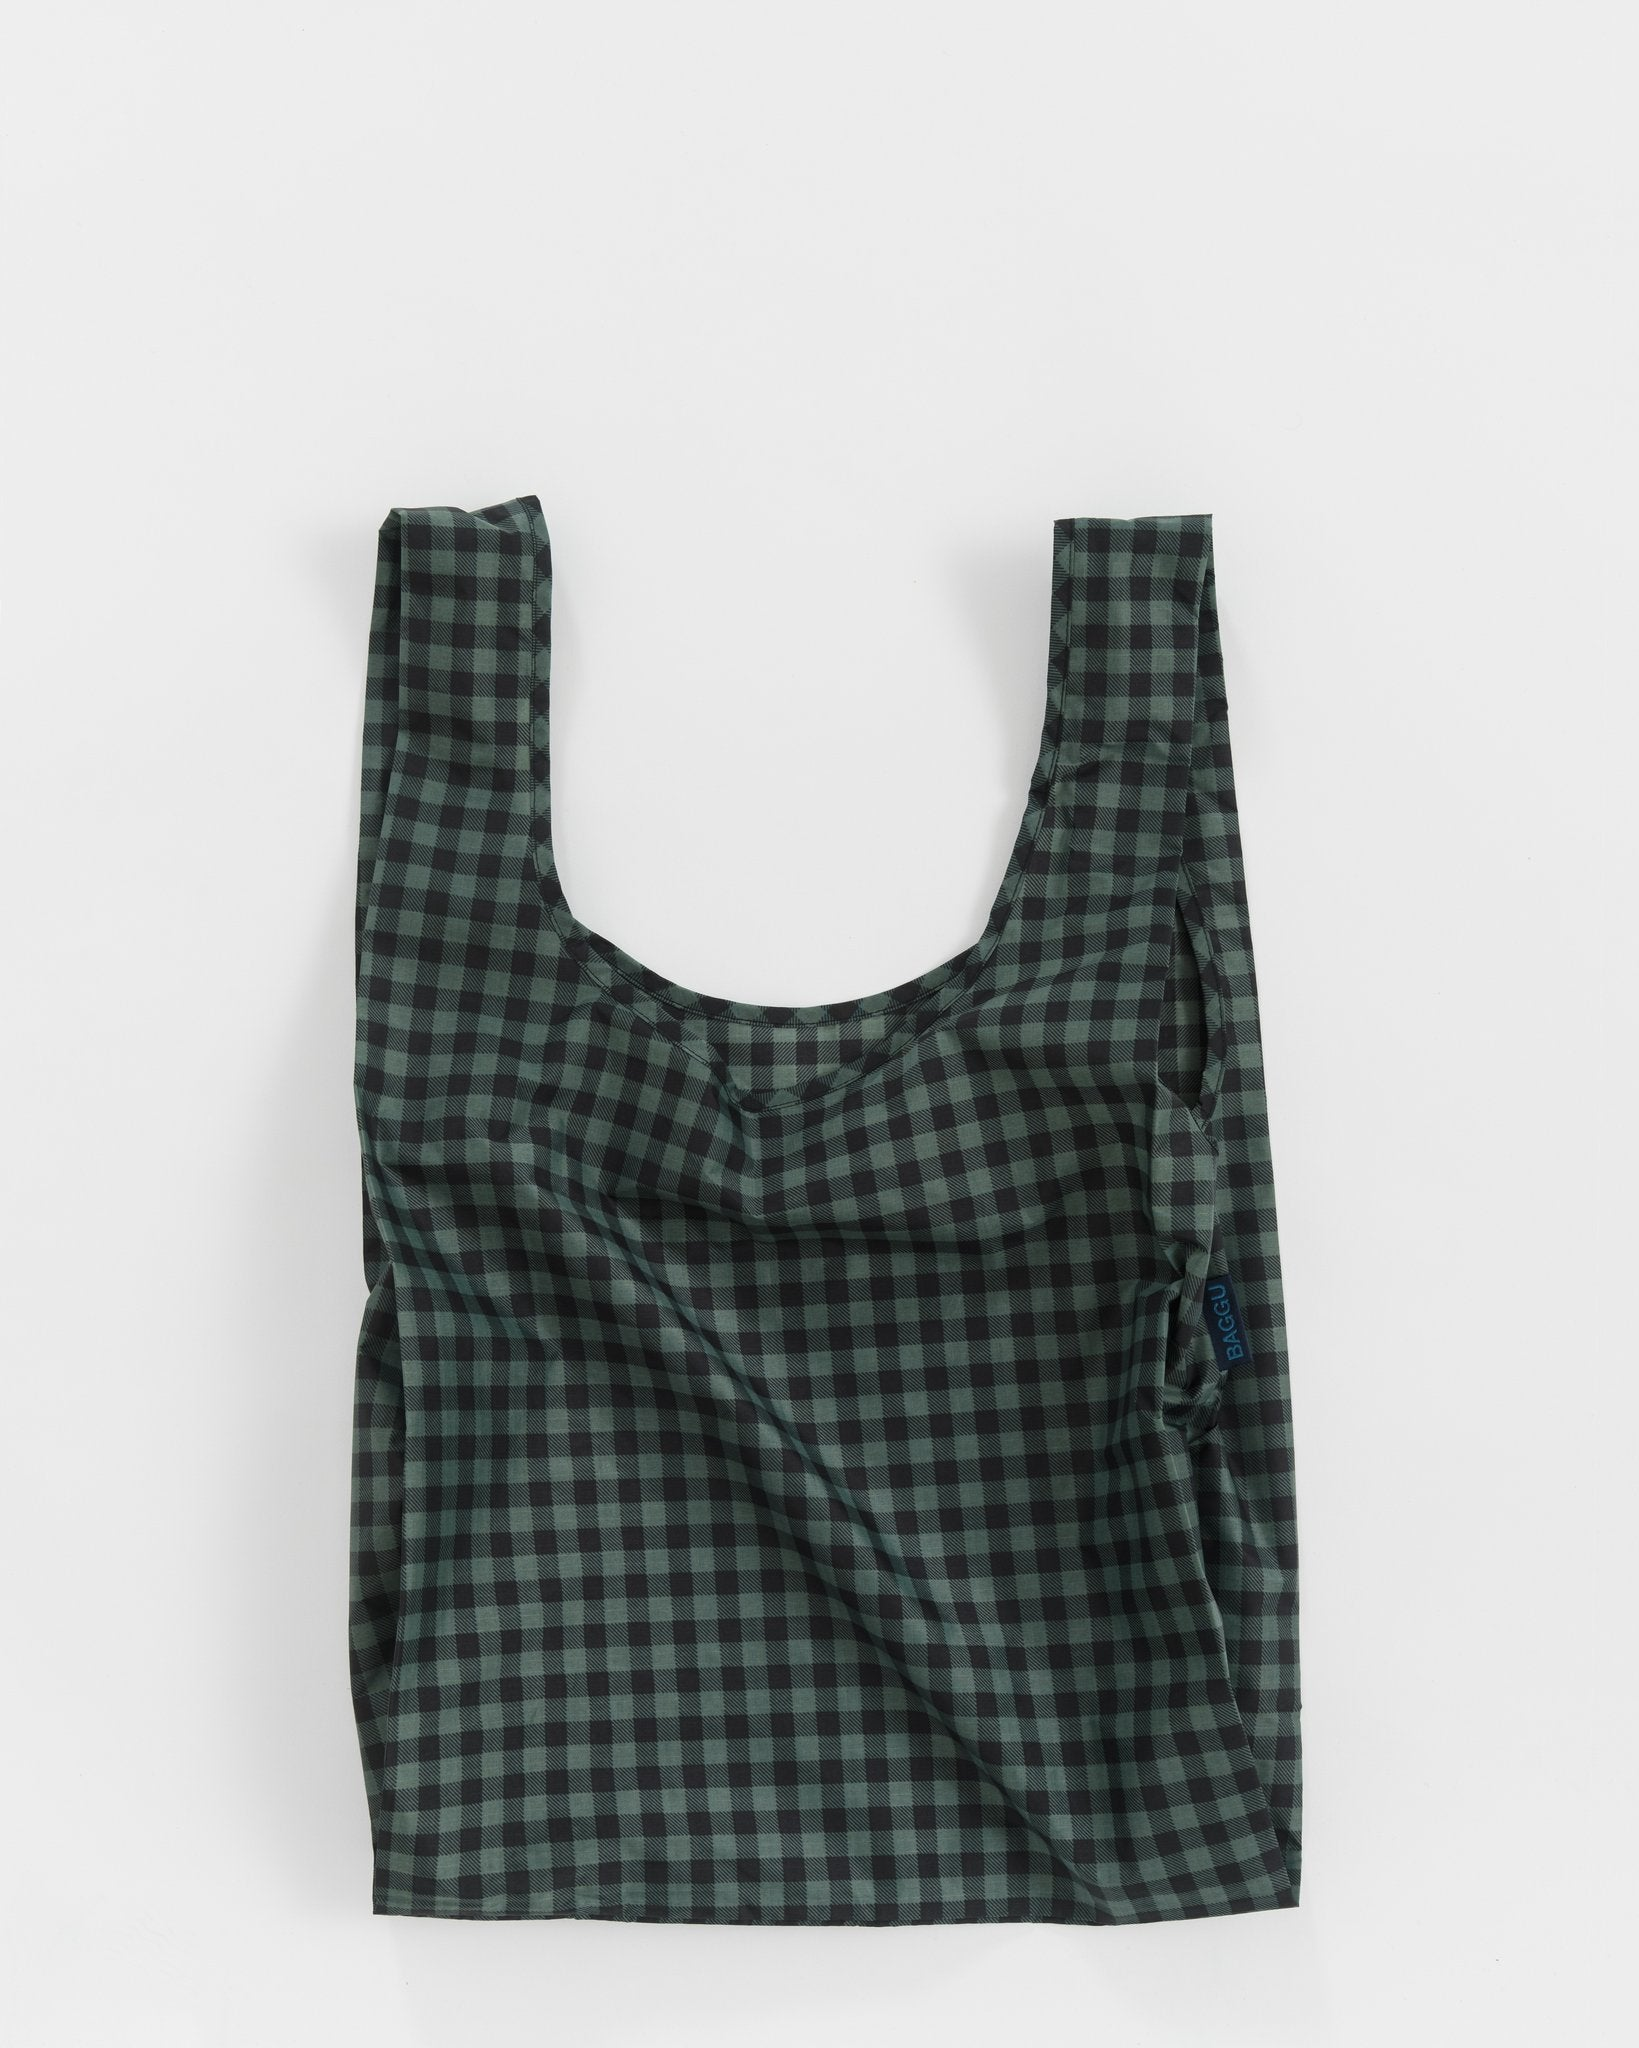 Green Gingham Tote